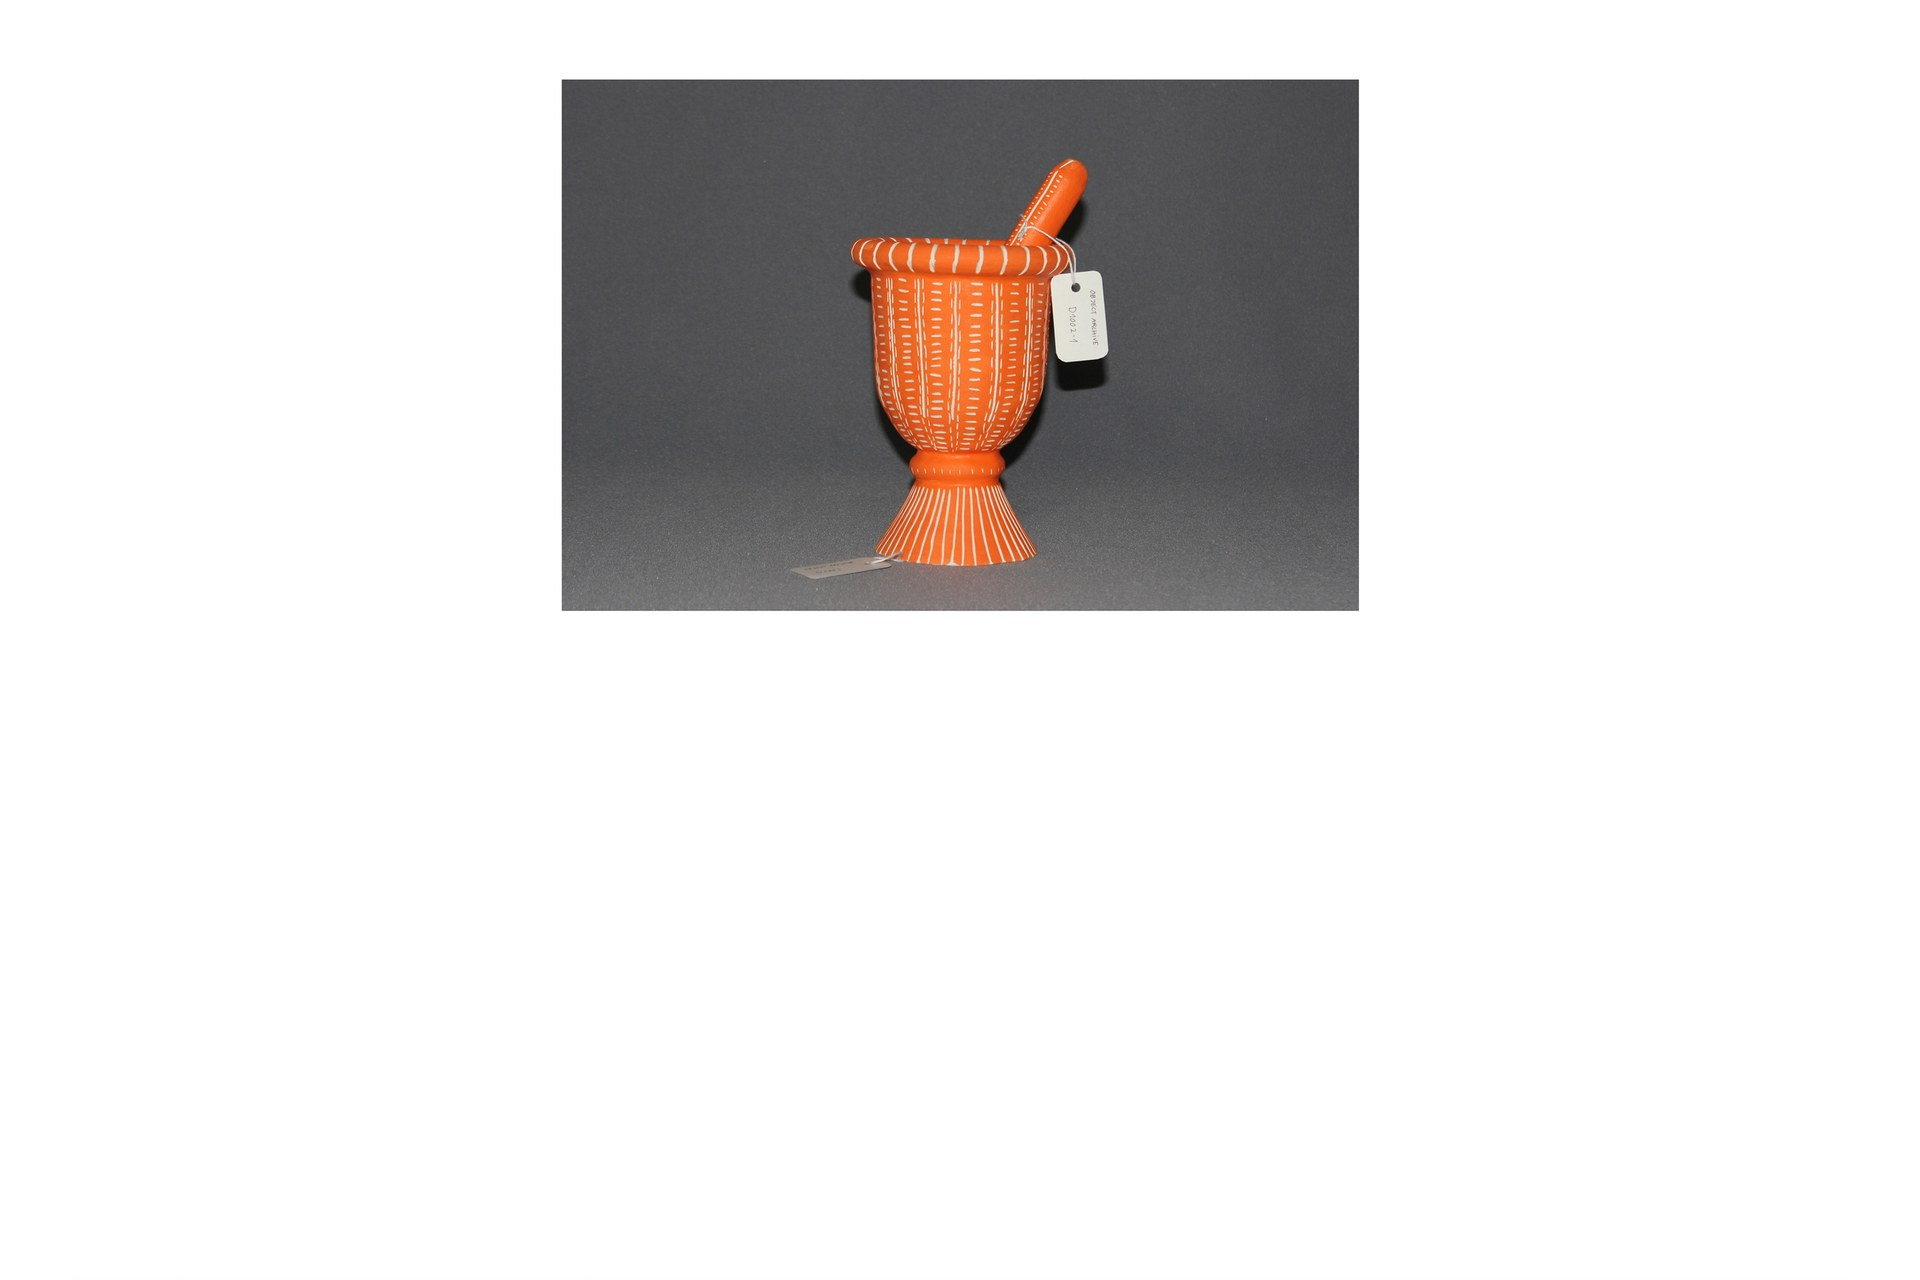 Object type: mortar and pestle Archive number: D1002 Dimensions H: 19cm W: 13.5cm D: 13.5cm